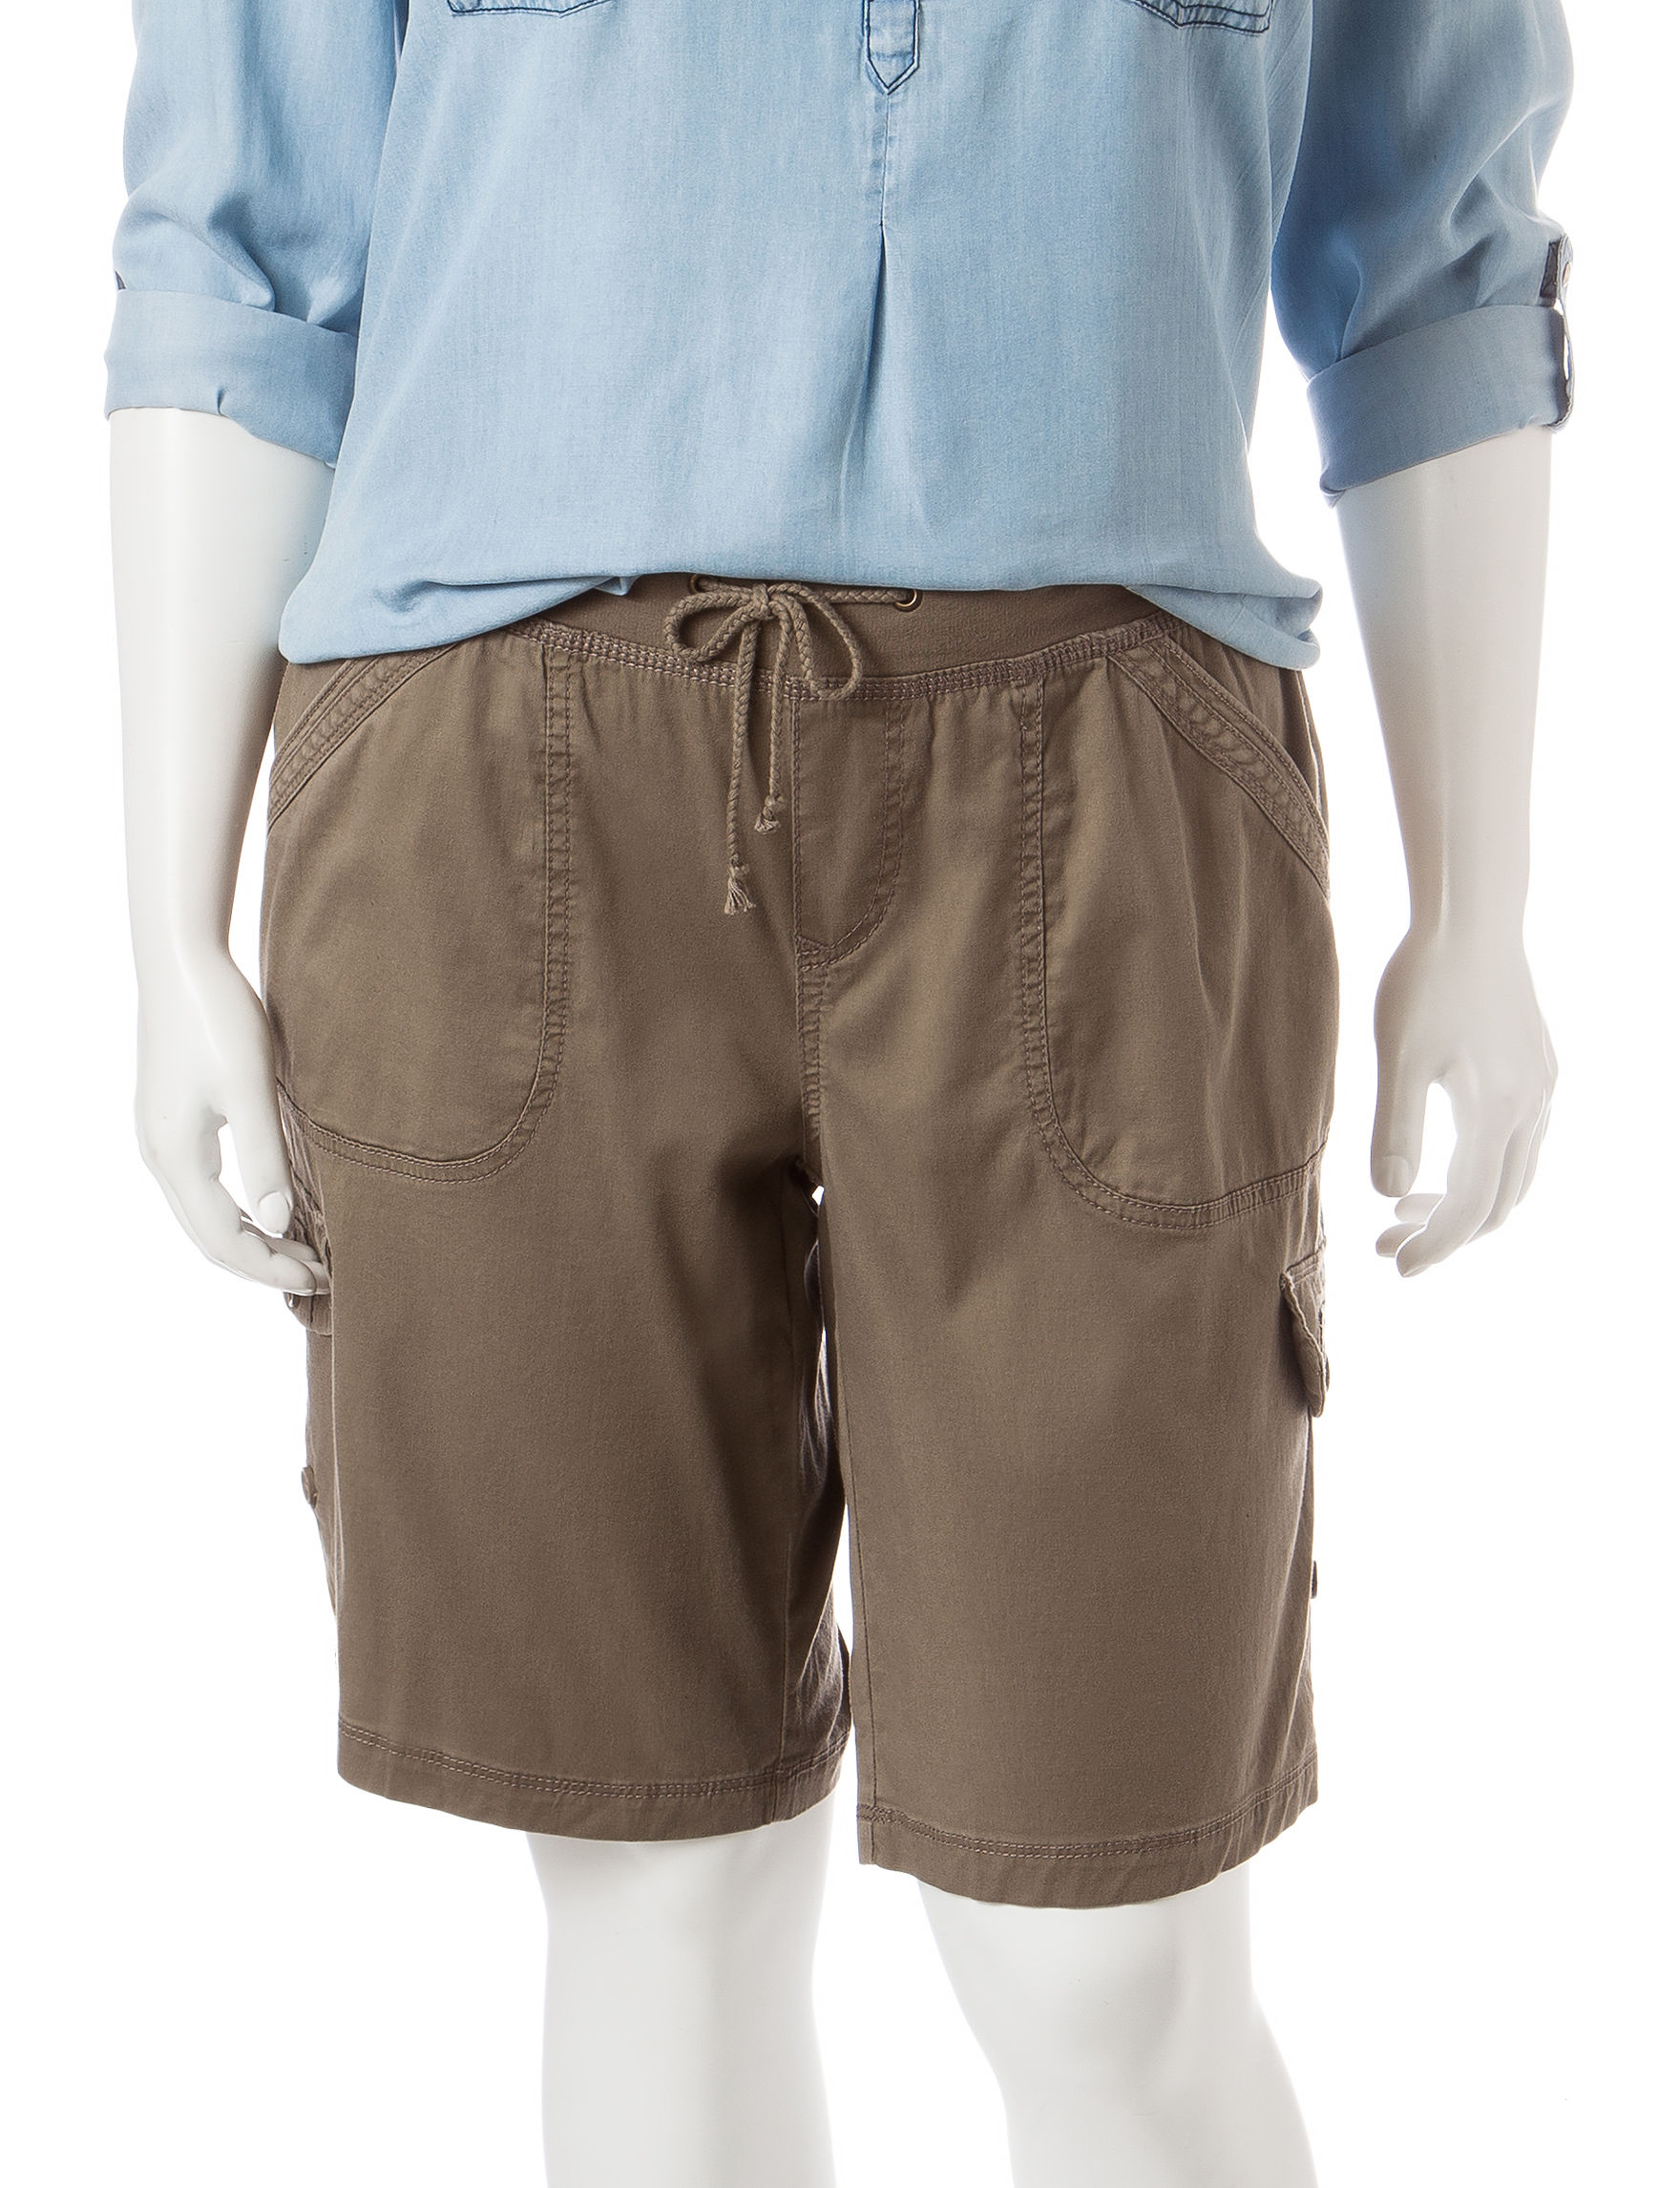 Union Bay Medium Brown Soft Shorts